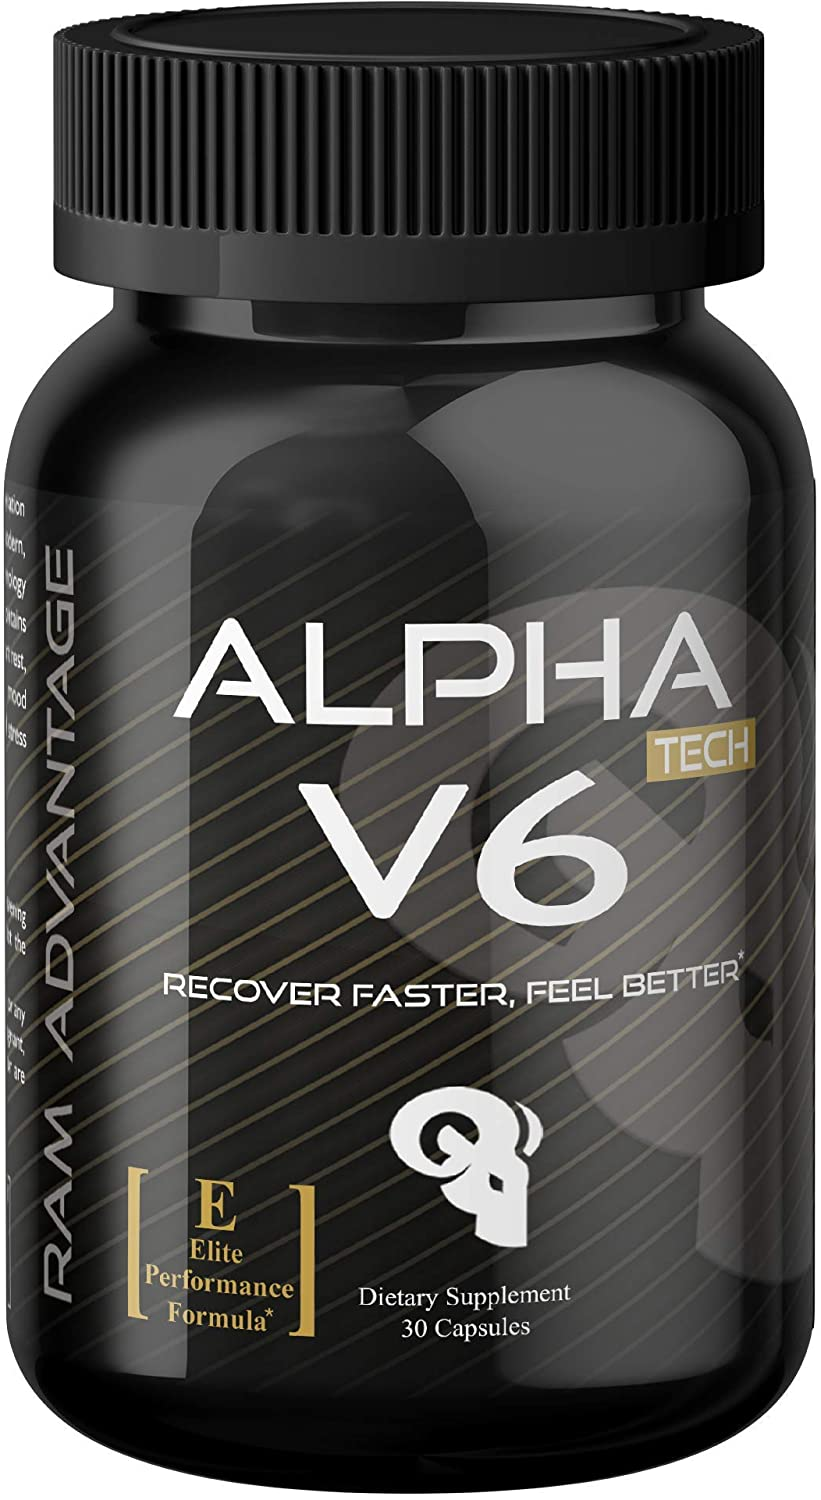 150 MG 5-HTP Optimized with Ashwagandha and B6 Supplement | Enhanced Recovery, Serotonin Boost, Stress Relief and Sleep Support | Alpha V6 by RAM ADVANTAGE | 30 Veg caps